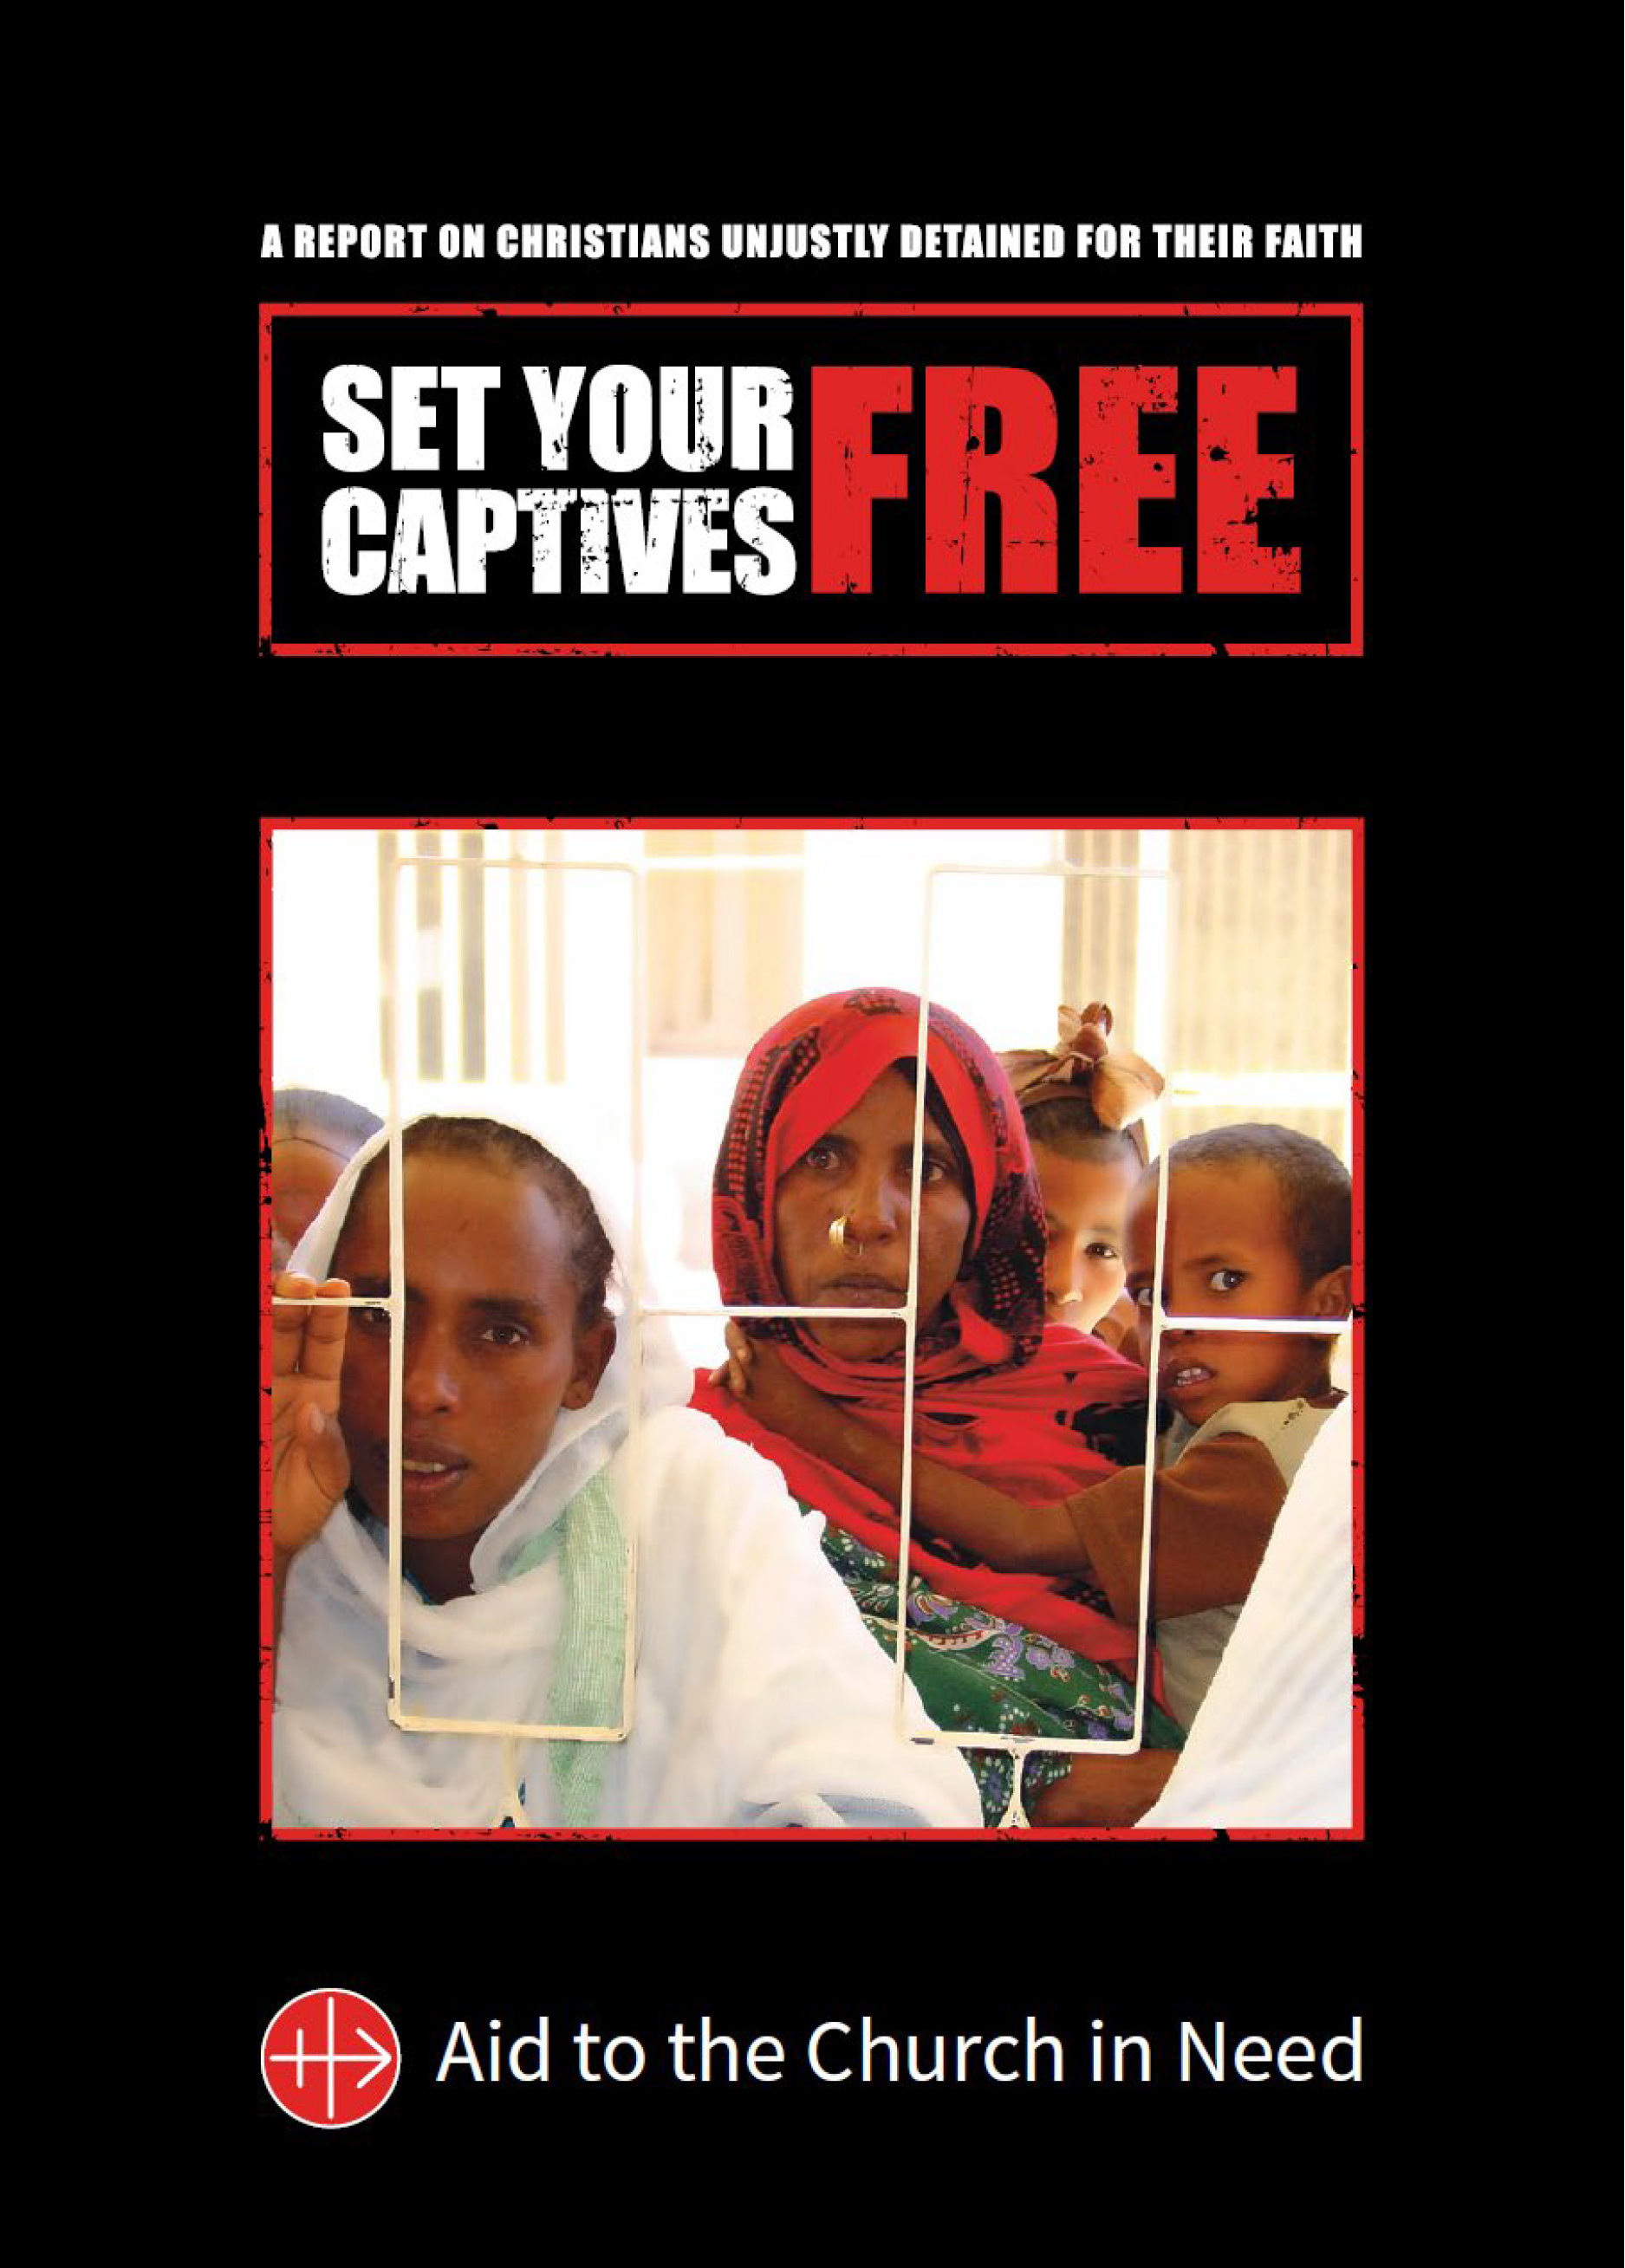 Set Your Captives Free - New Report on Persecuted Christians